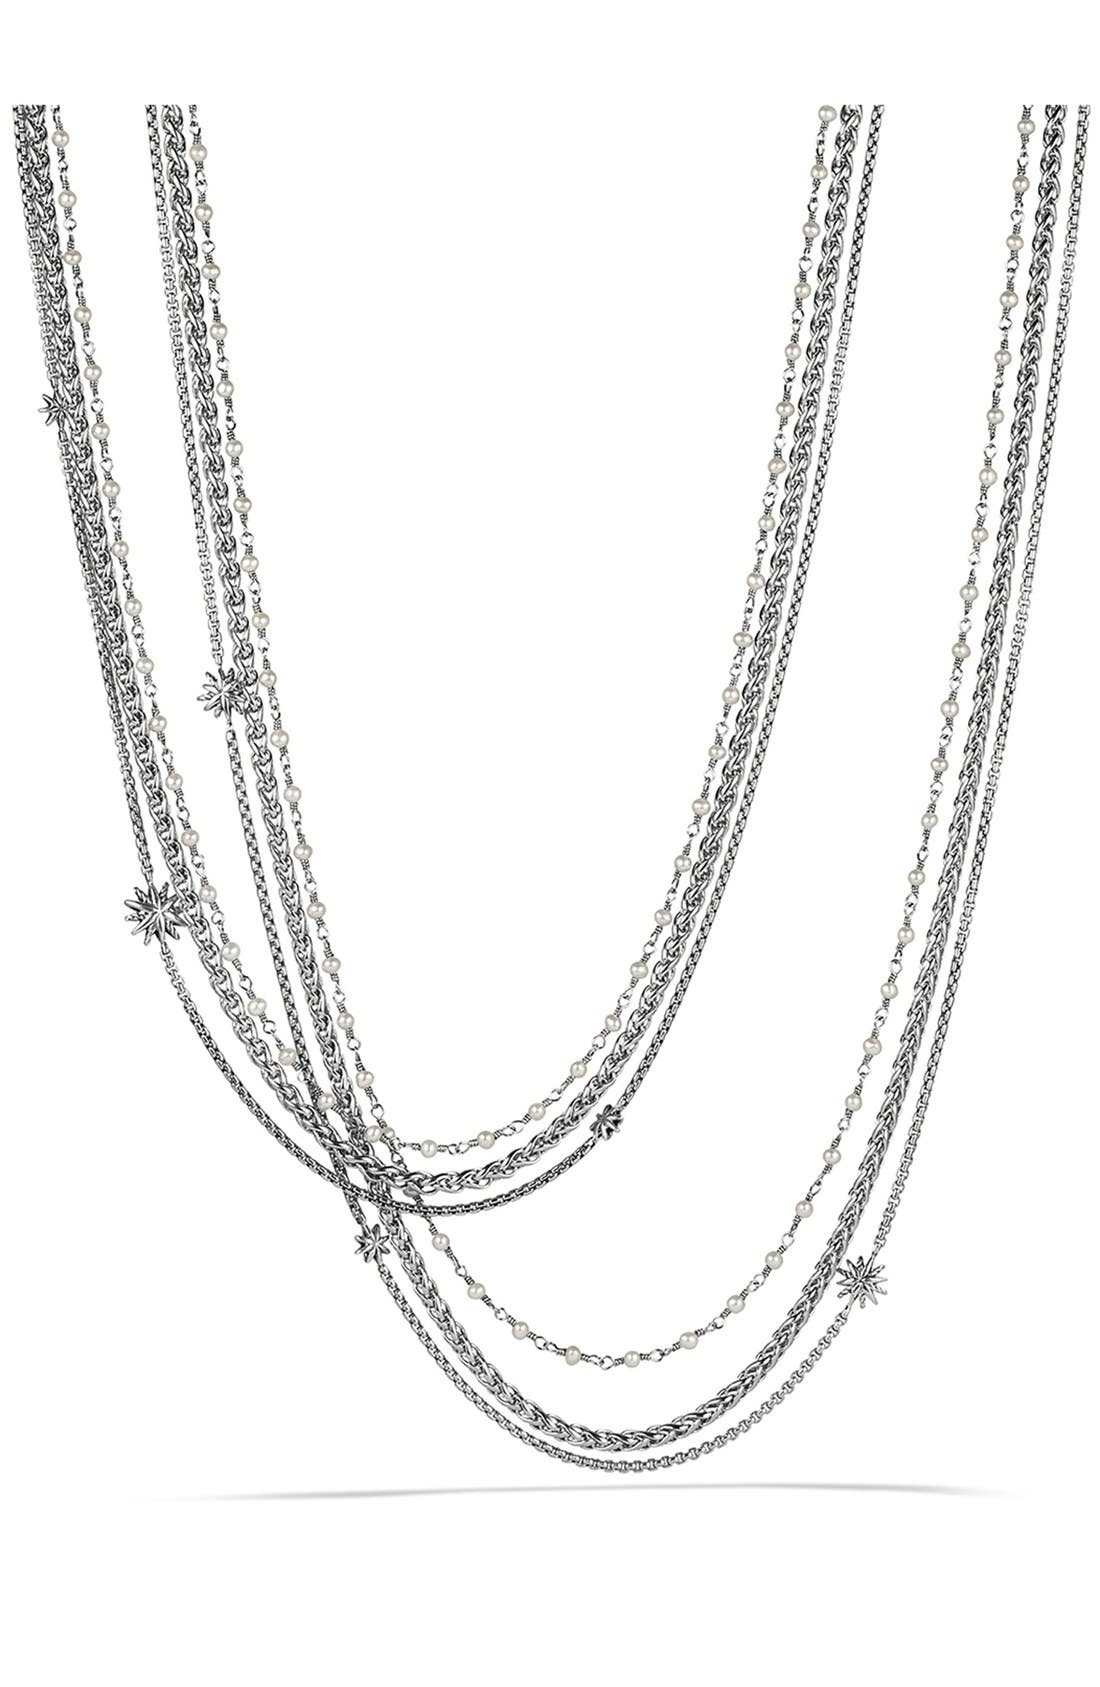 DAVID YURMAN 'Starburst' Chain Necklace with Pearls, Main, color, PEARL/ SILVER